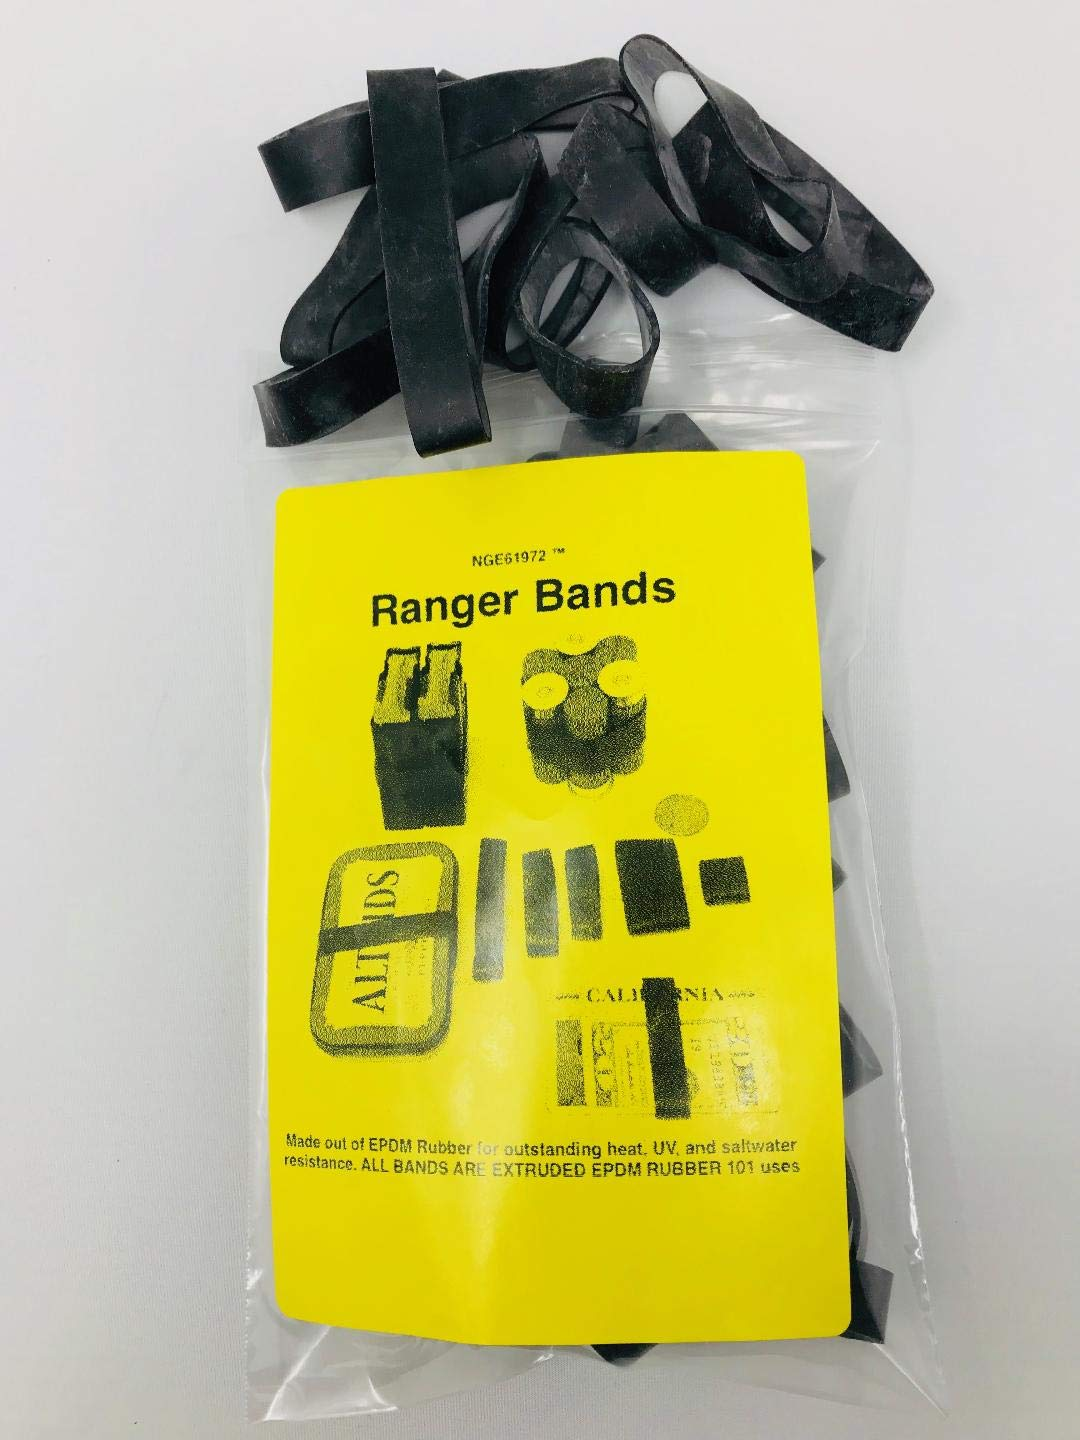 abef0c955110 Amazon.com   Ranger Bands Mixed (35 Count) Made from EPDM Rubber for  Survival and Strapping Gear Various Sizes Made in The USA   Office Products